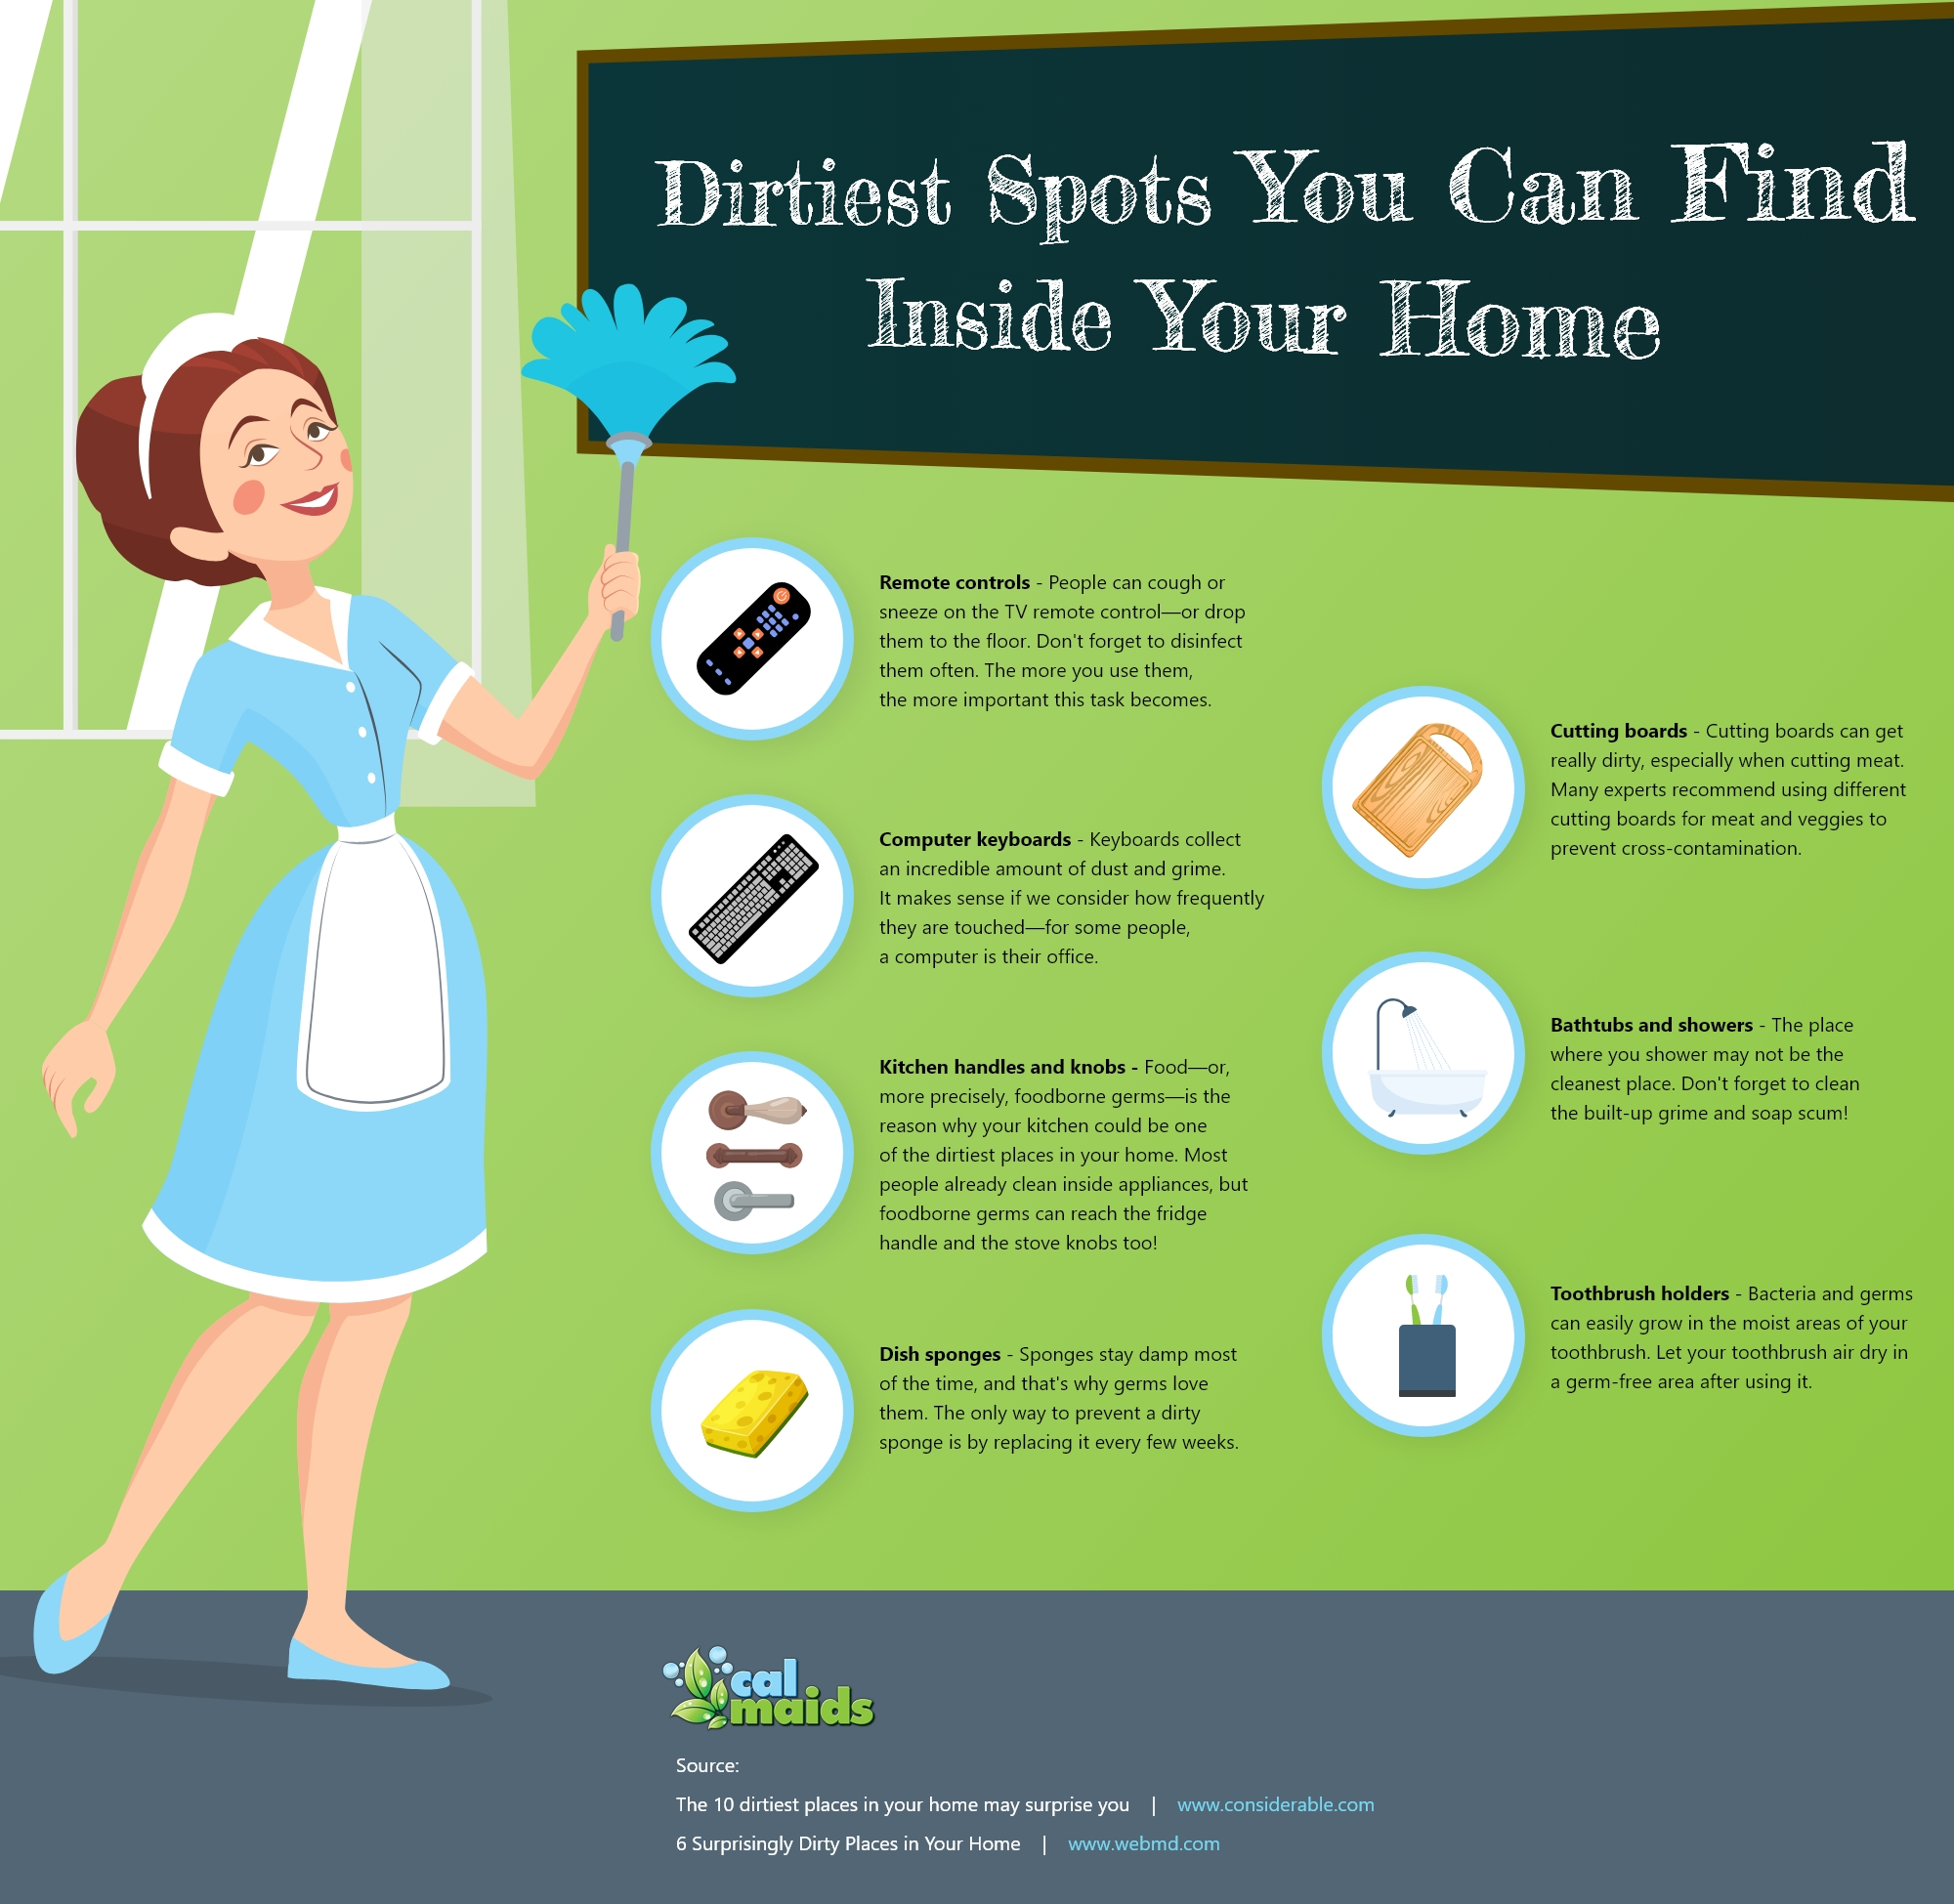 Dirtiest Spots You Can Find Inside Your Home